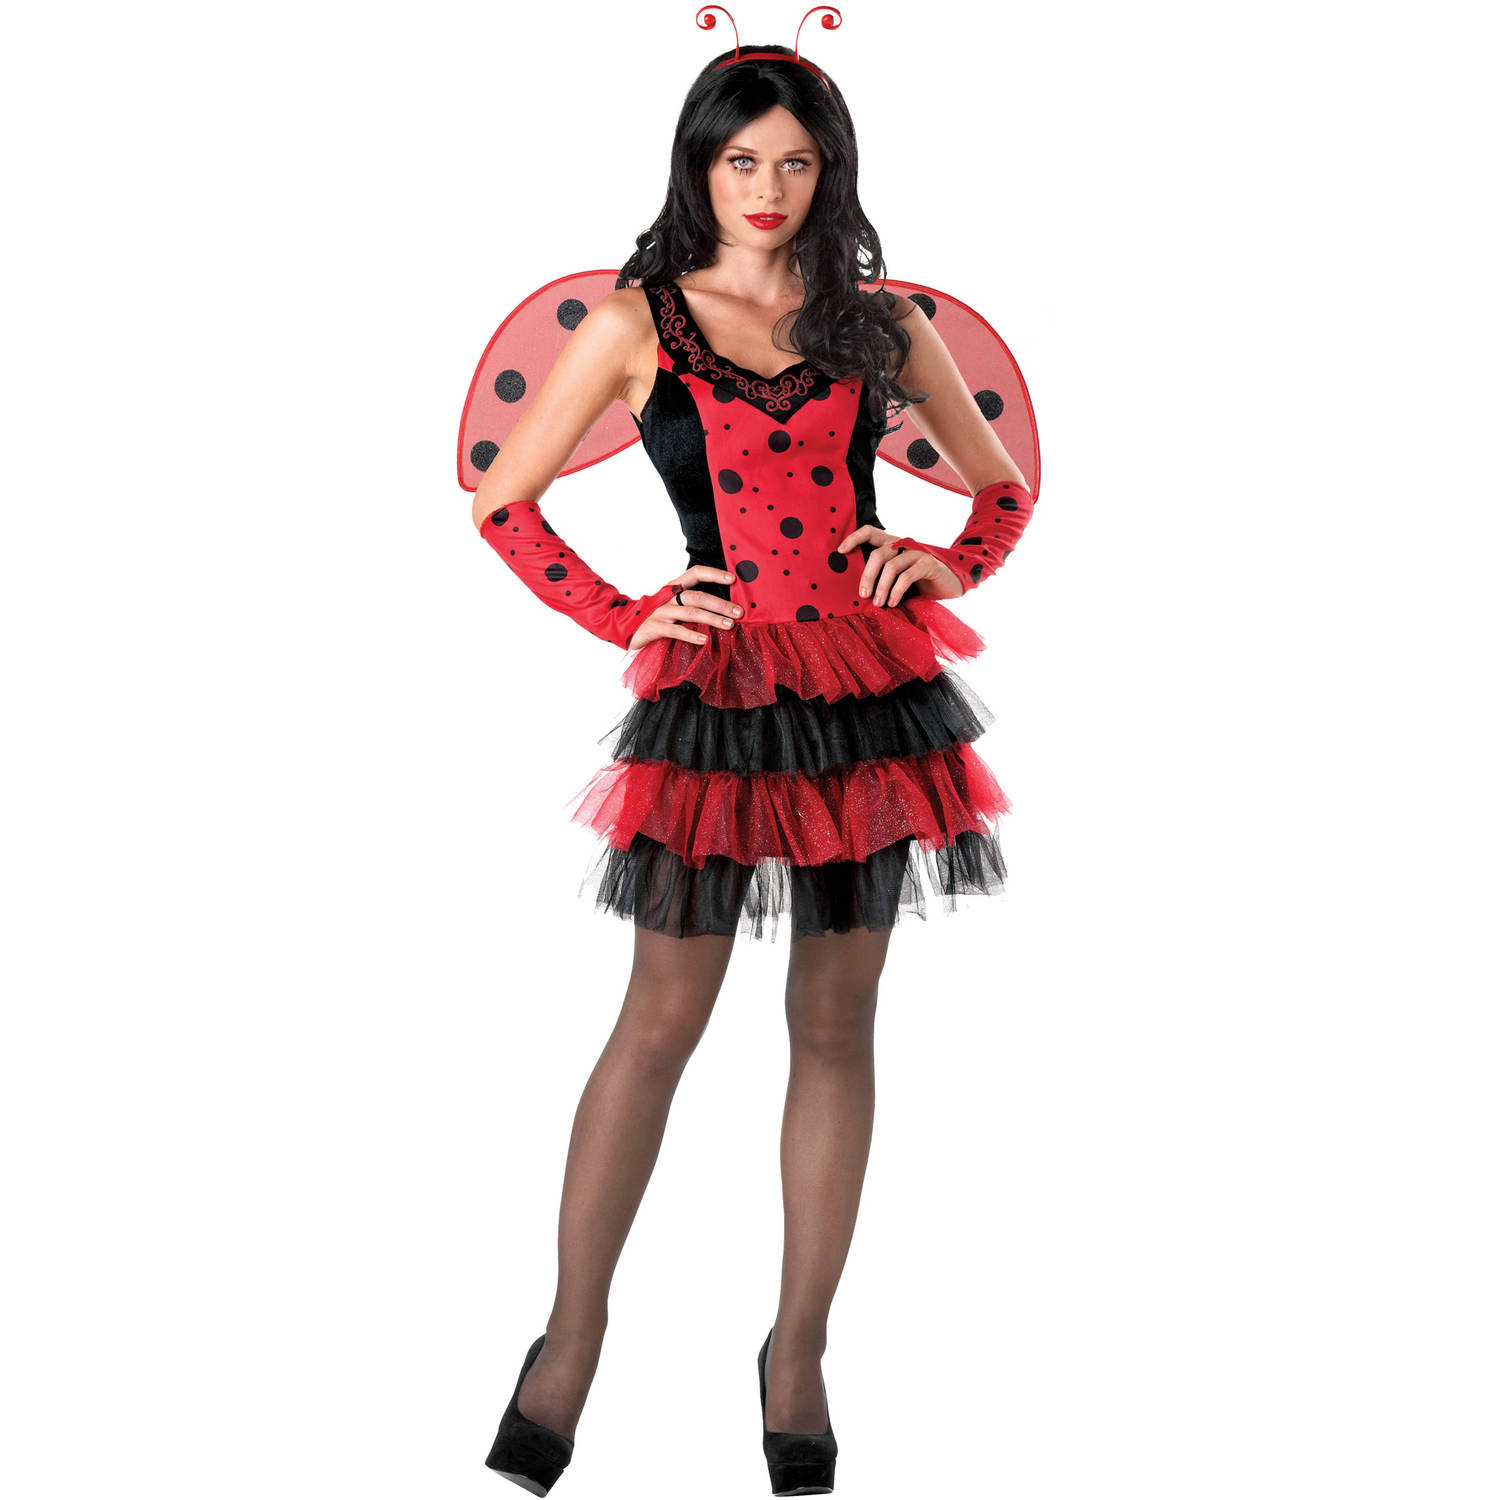 Costume adult bug lady